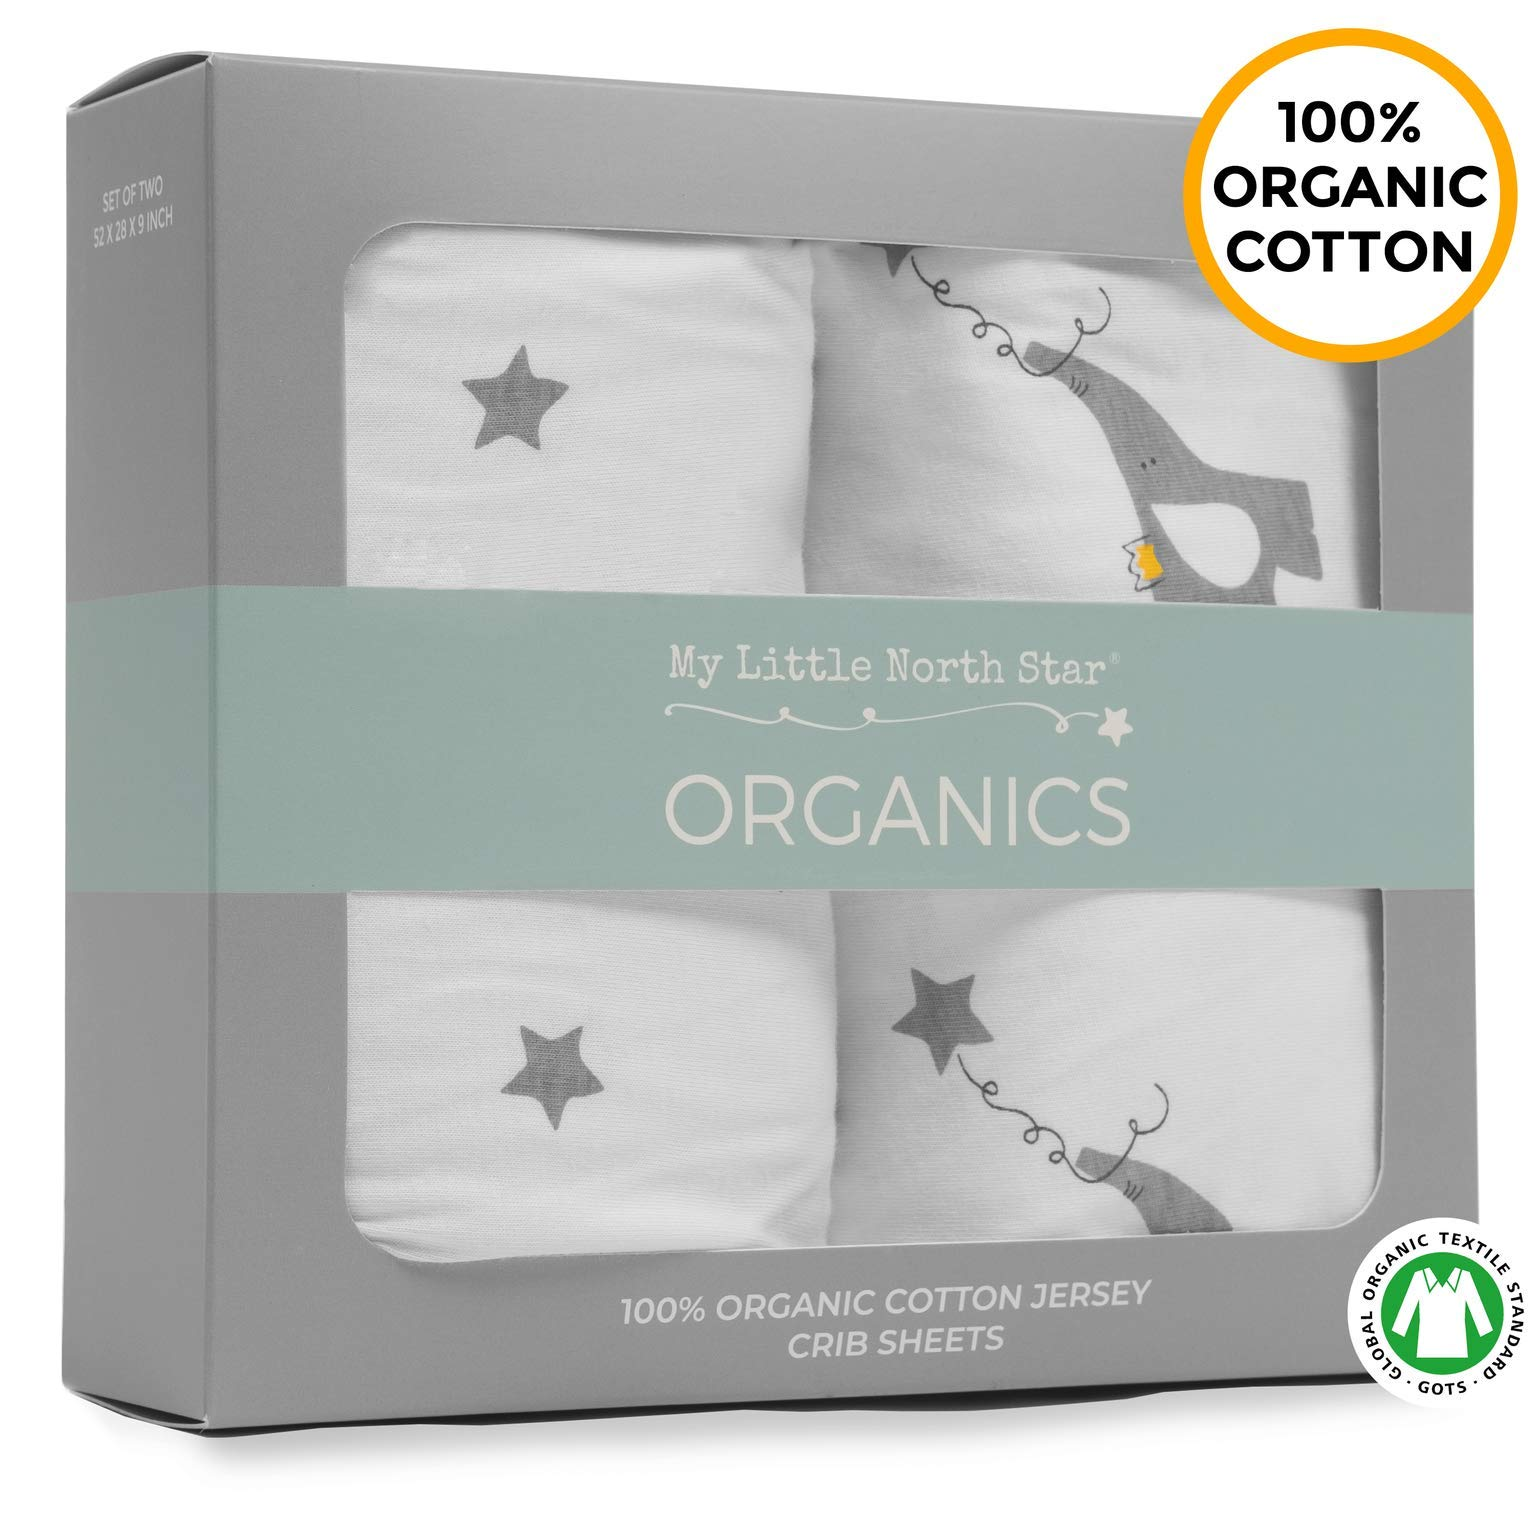 My Little North Star Crib Sheets - 100% Organic Jersey Cotton - 2pk Unisex Grey - Best for boy or Girl by My Little North Star